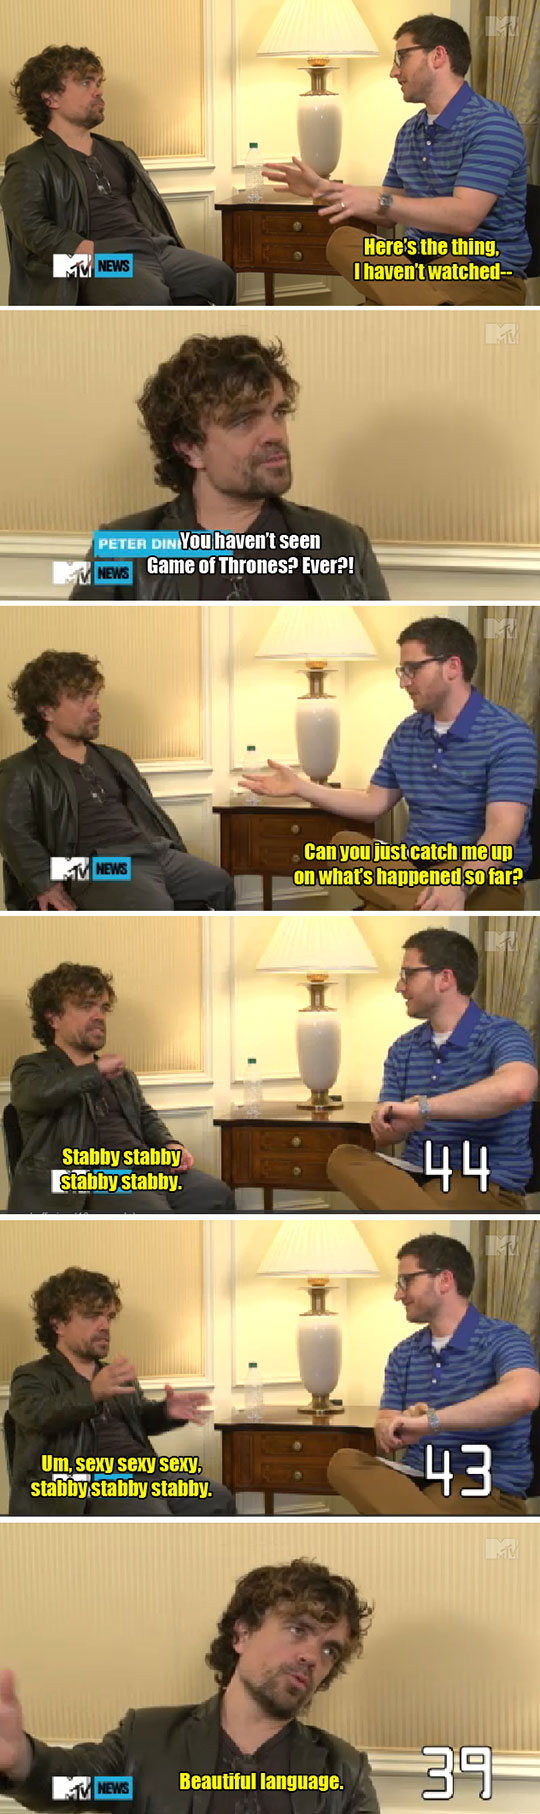 cool-Peter-Dinklage-GoT-summary